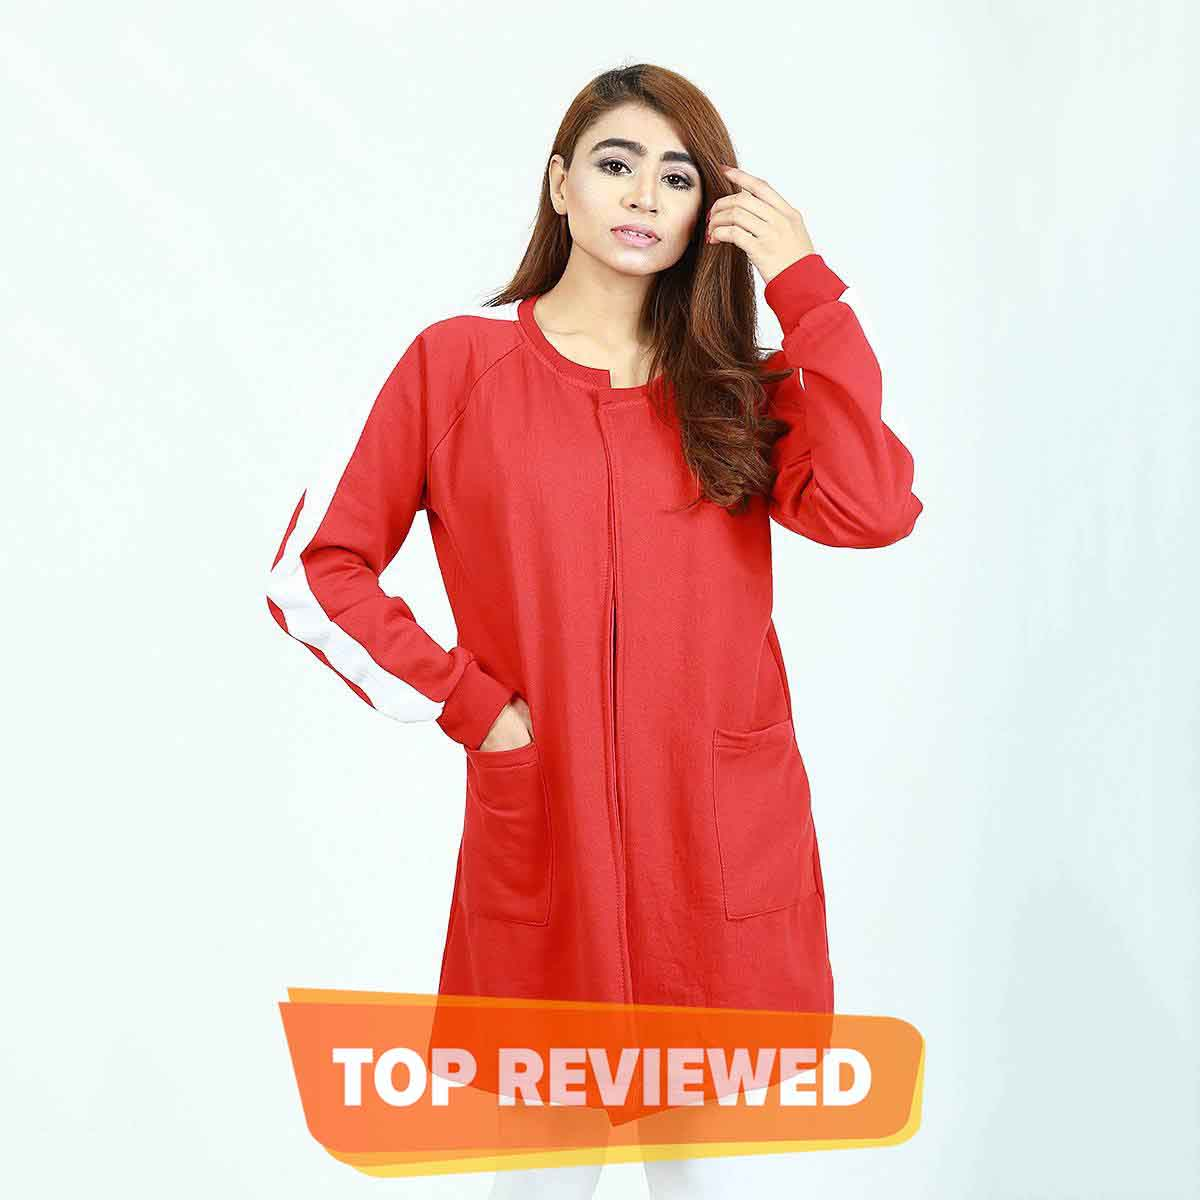 Select Red Sleeves Panel Style Casual Upper (Free Size) - C04SL